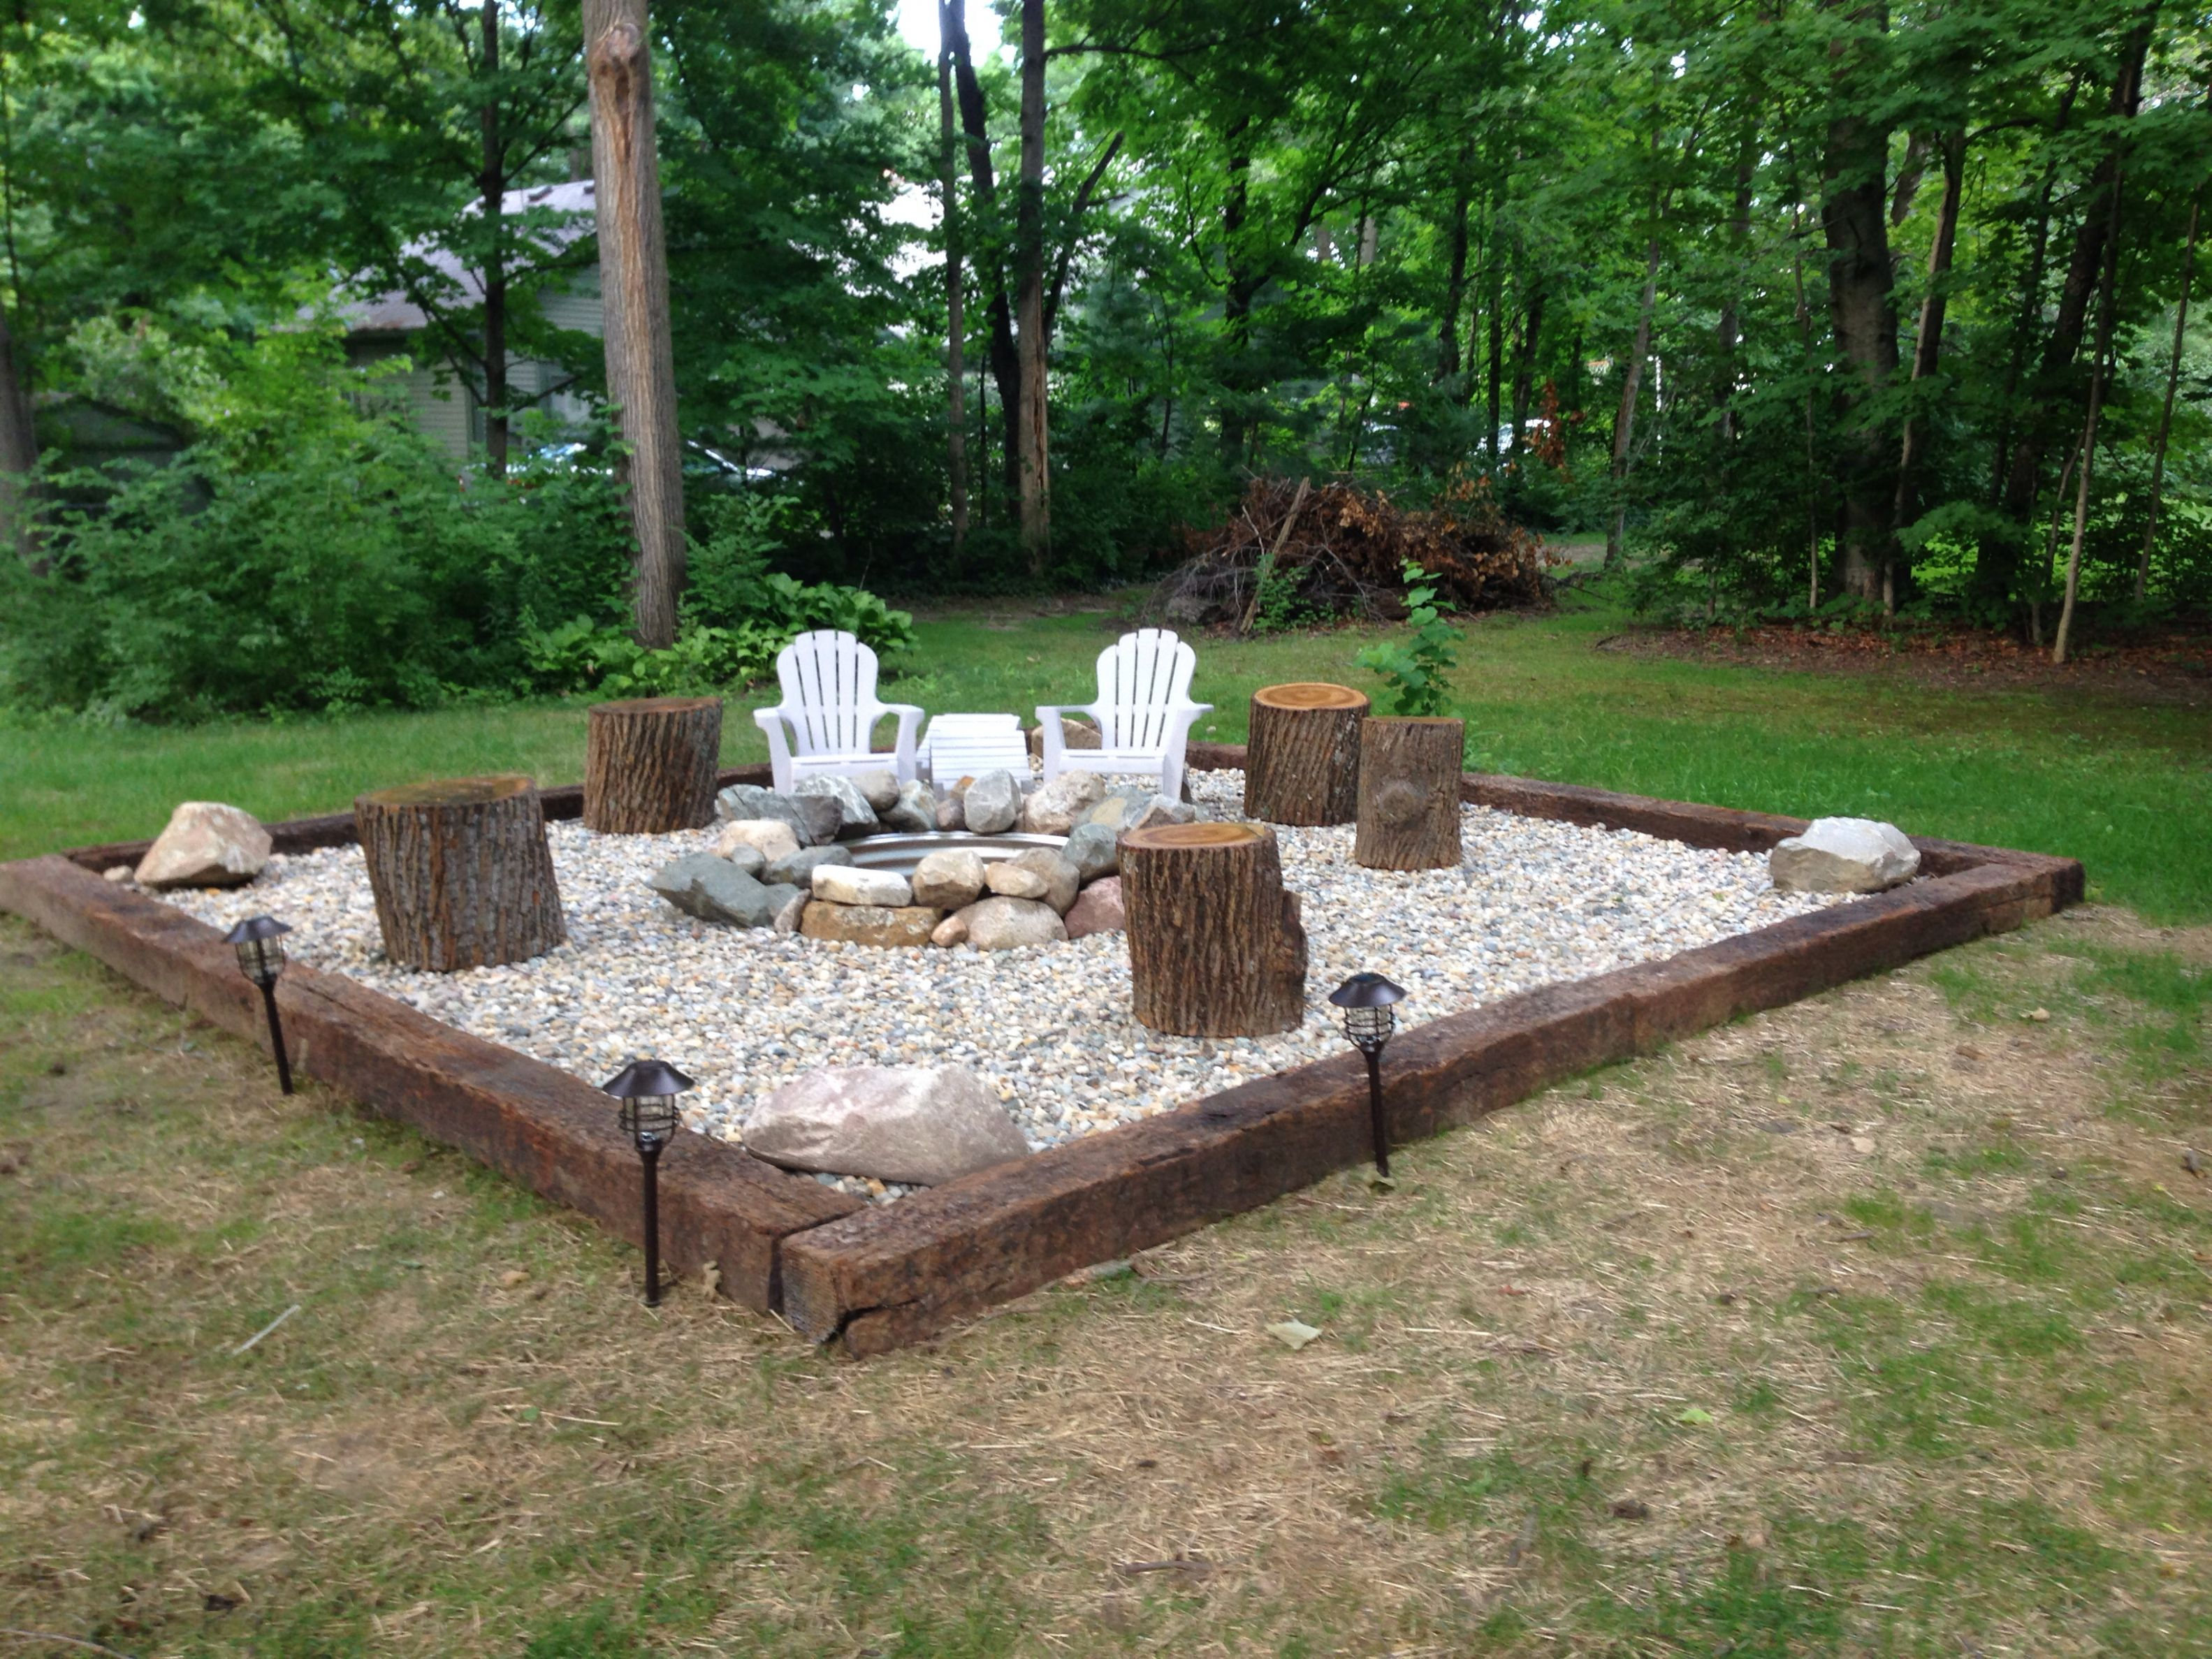 Awesome More Ideas Below: DIY Square Round Cinder Block Fire Pit How To Make Ideas  Simple Easy Backyards Cinder Block Fire Pit Grill Small Painted Cinder  Block Fire ...